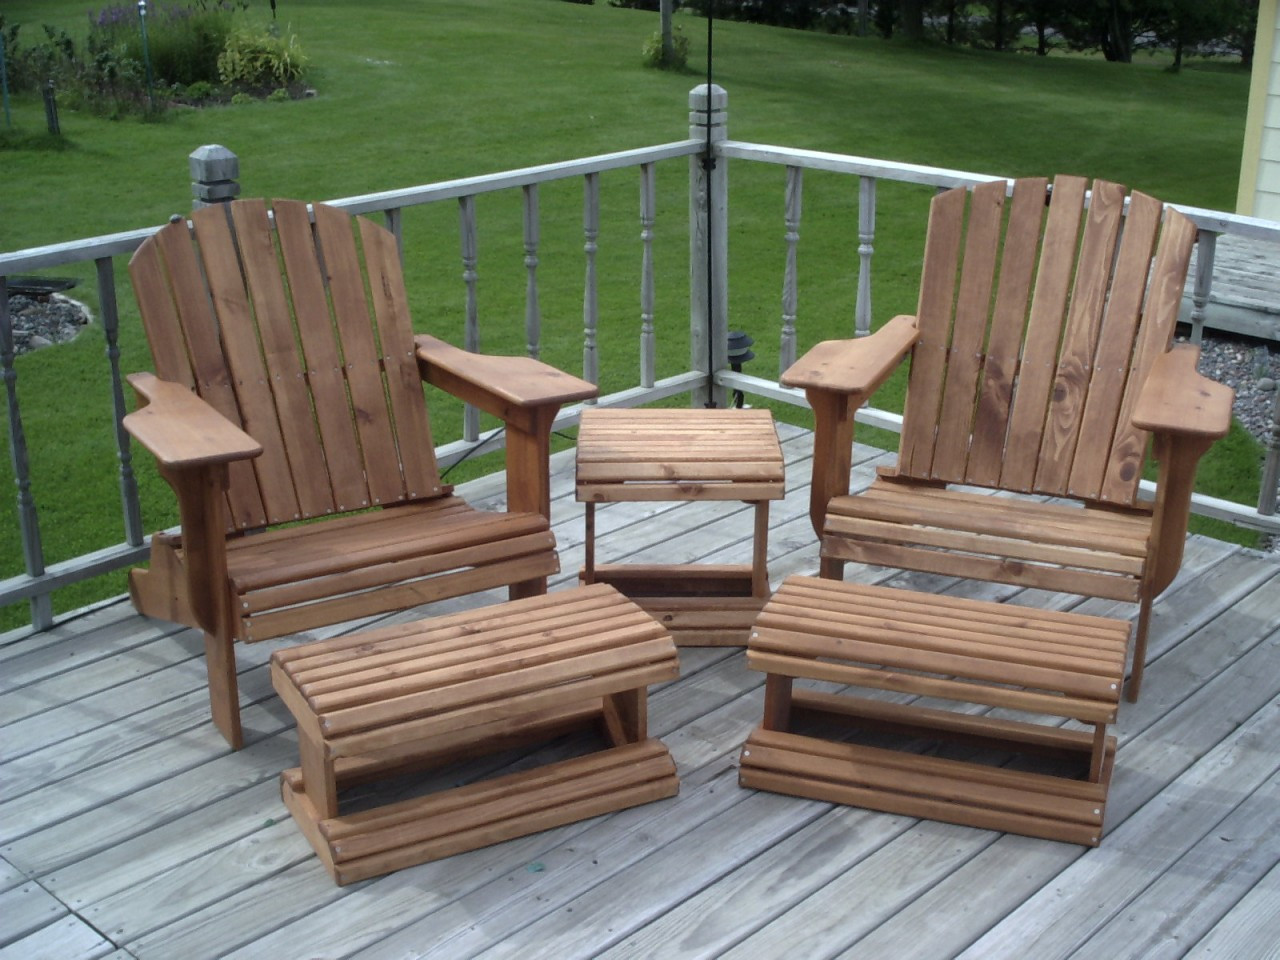 plans adirondack chairs free bean bag lounger chair and ottoman woodworking full size